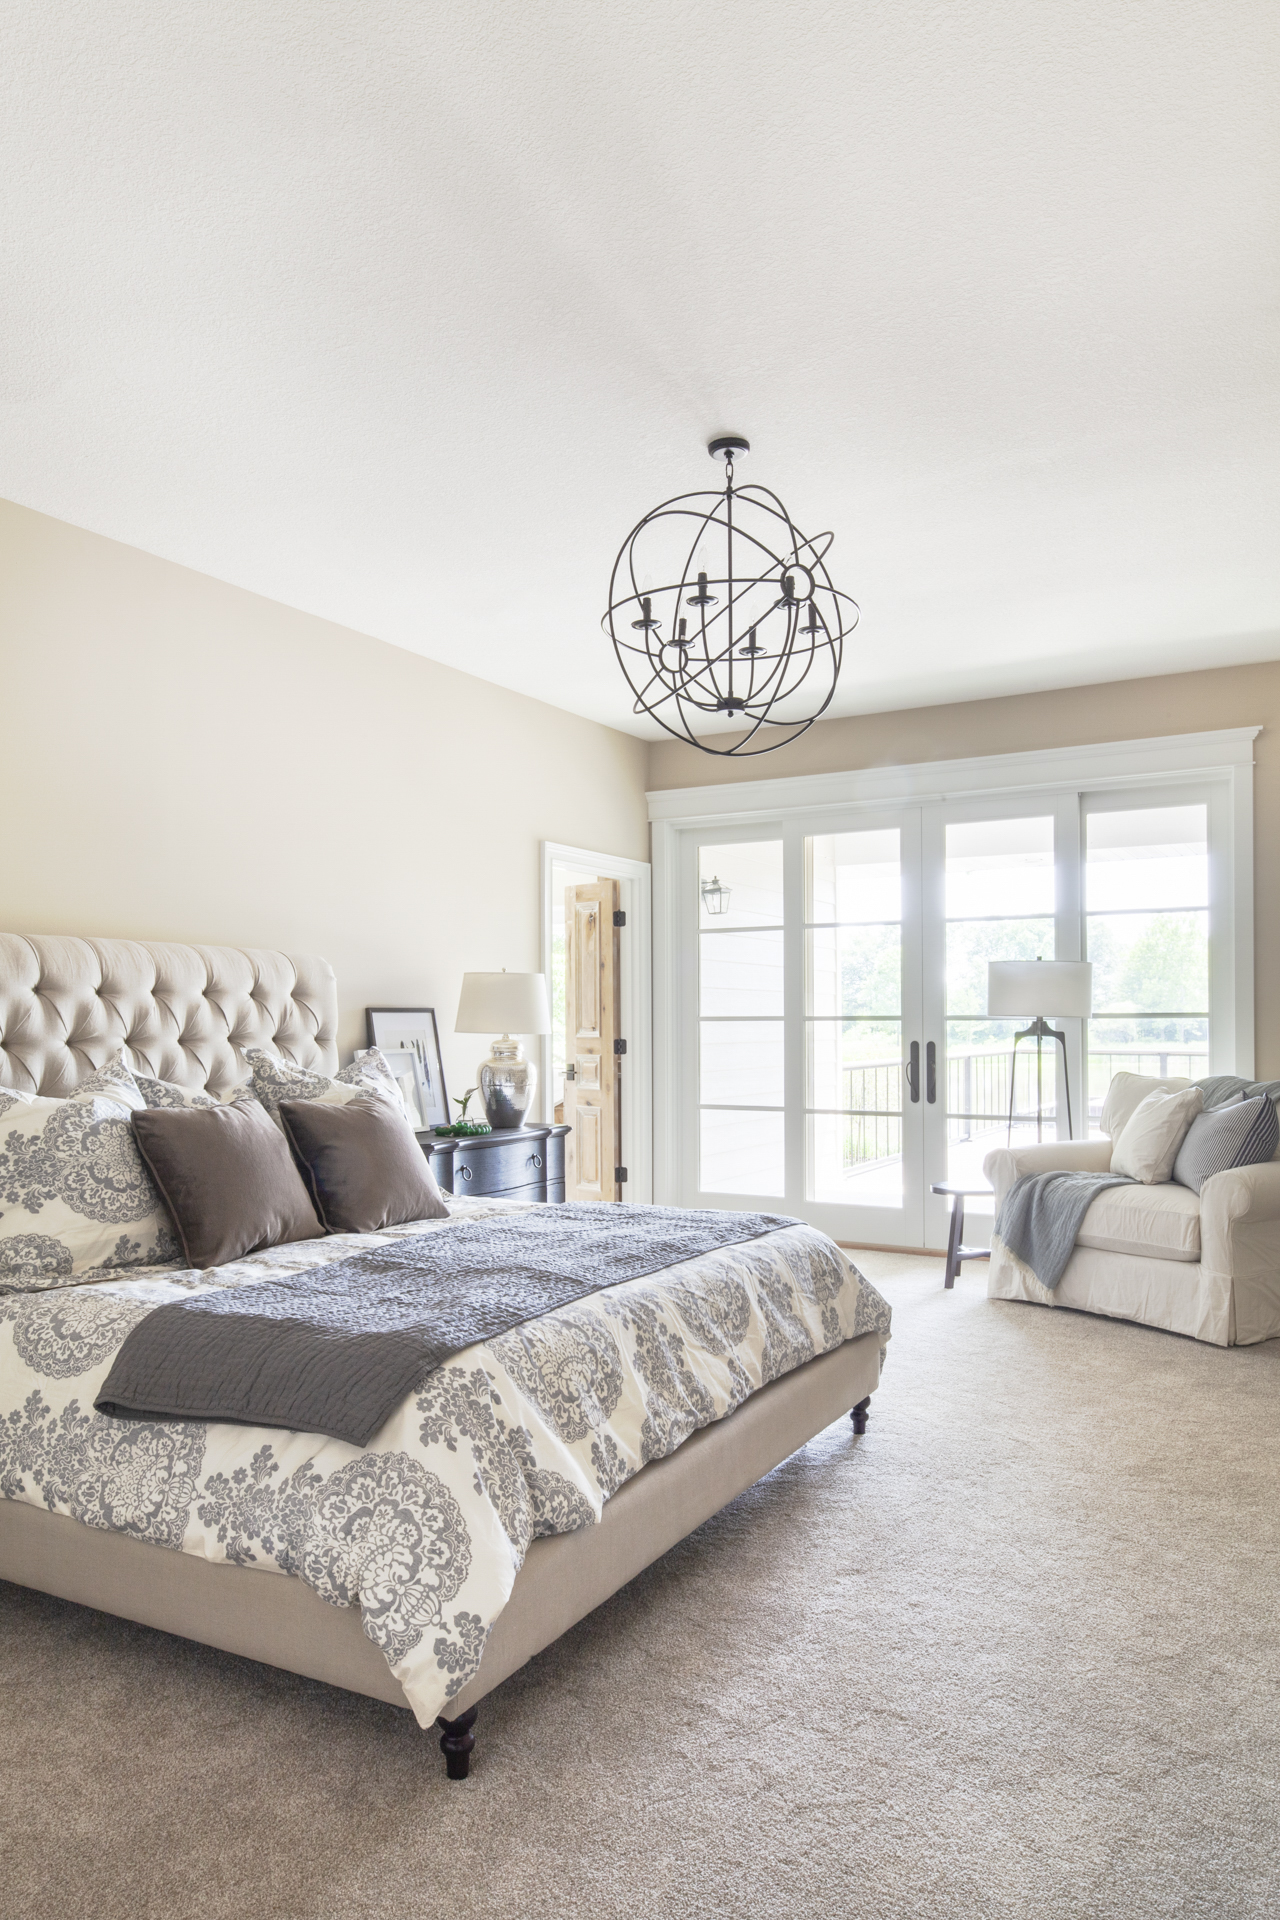 before-and-after-home-reveal-scout-and-nimble-lake-view-luxe-country-interior-design-bedroom-iorn-chandelier-tufted-headboard-102.jpg